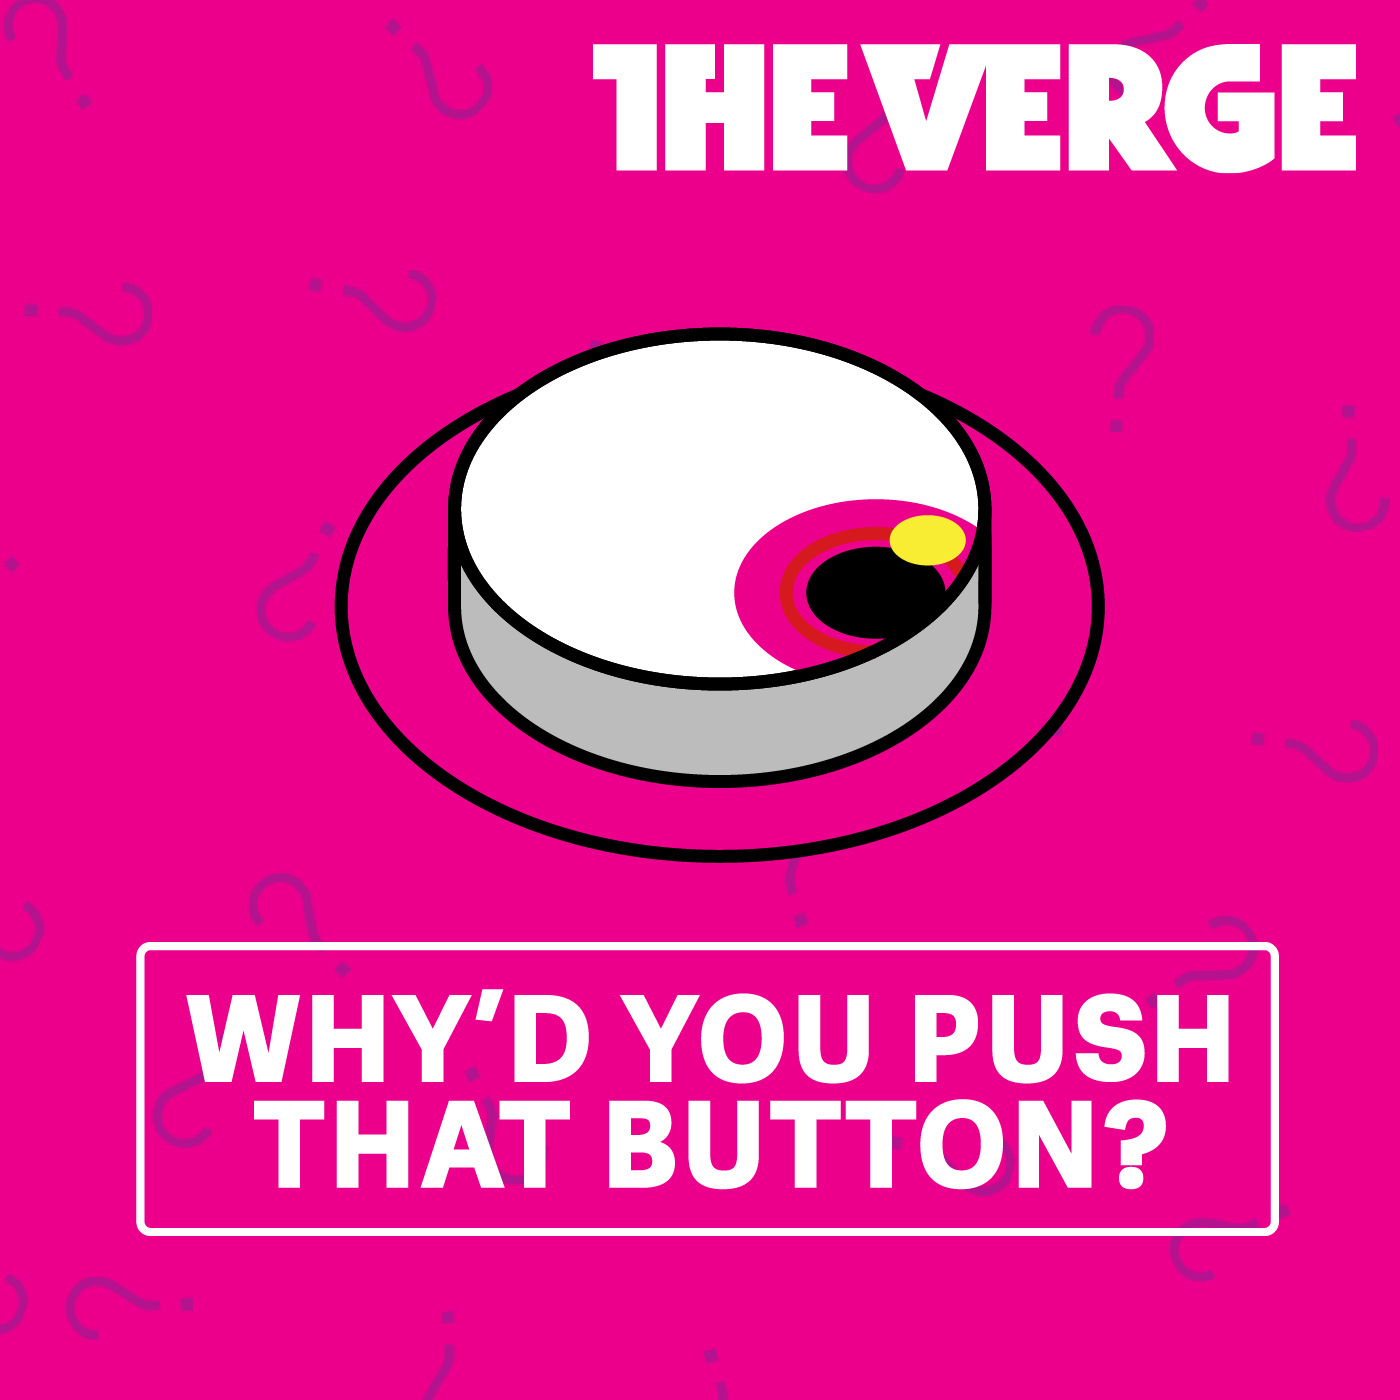 Why'd You Push That Button?